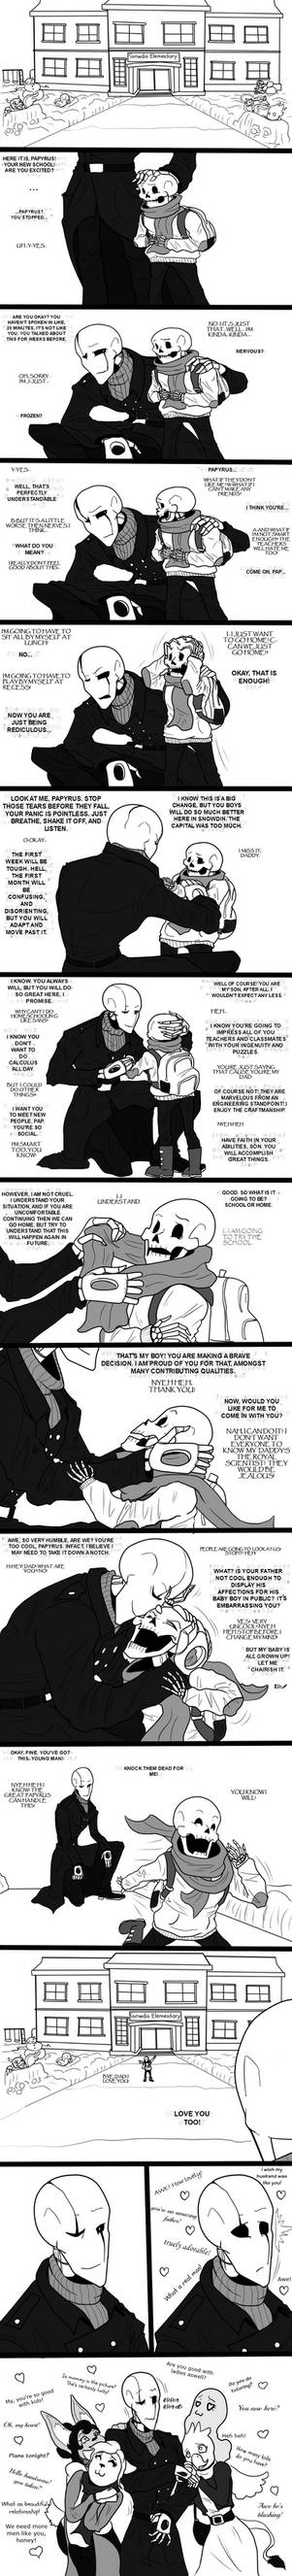 Dadster and Papyrus comic - First day.